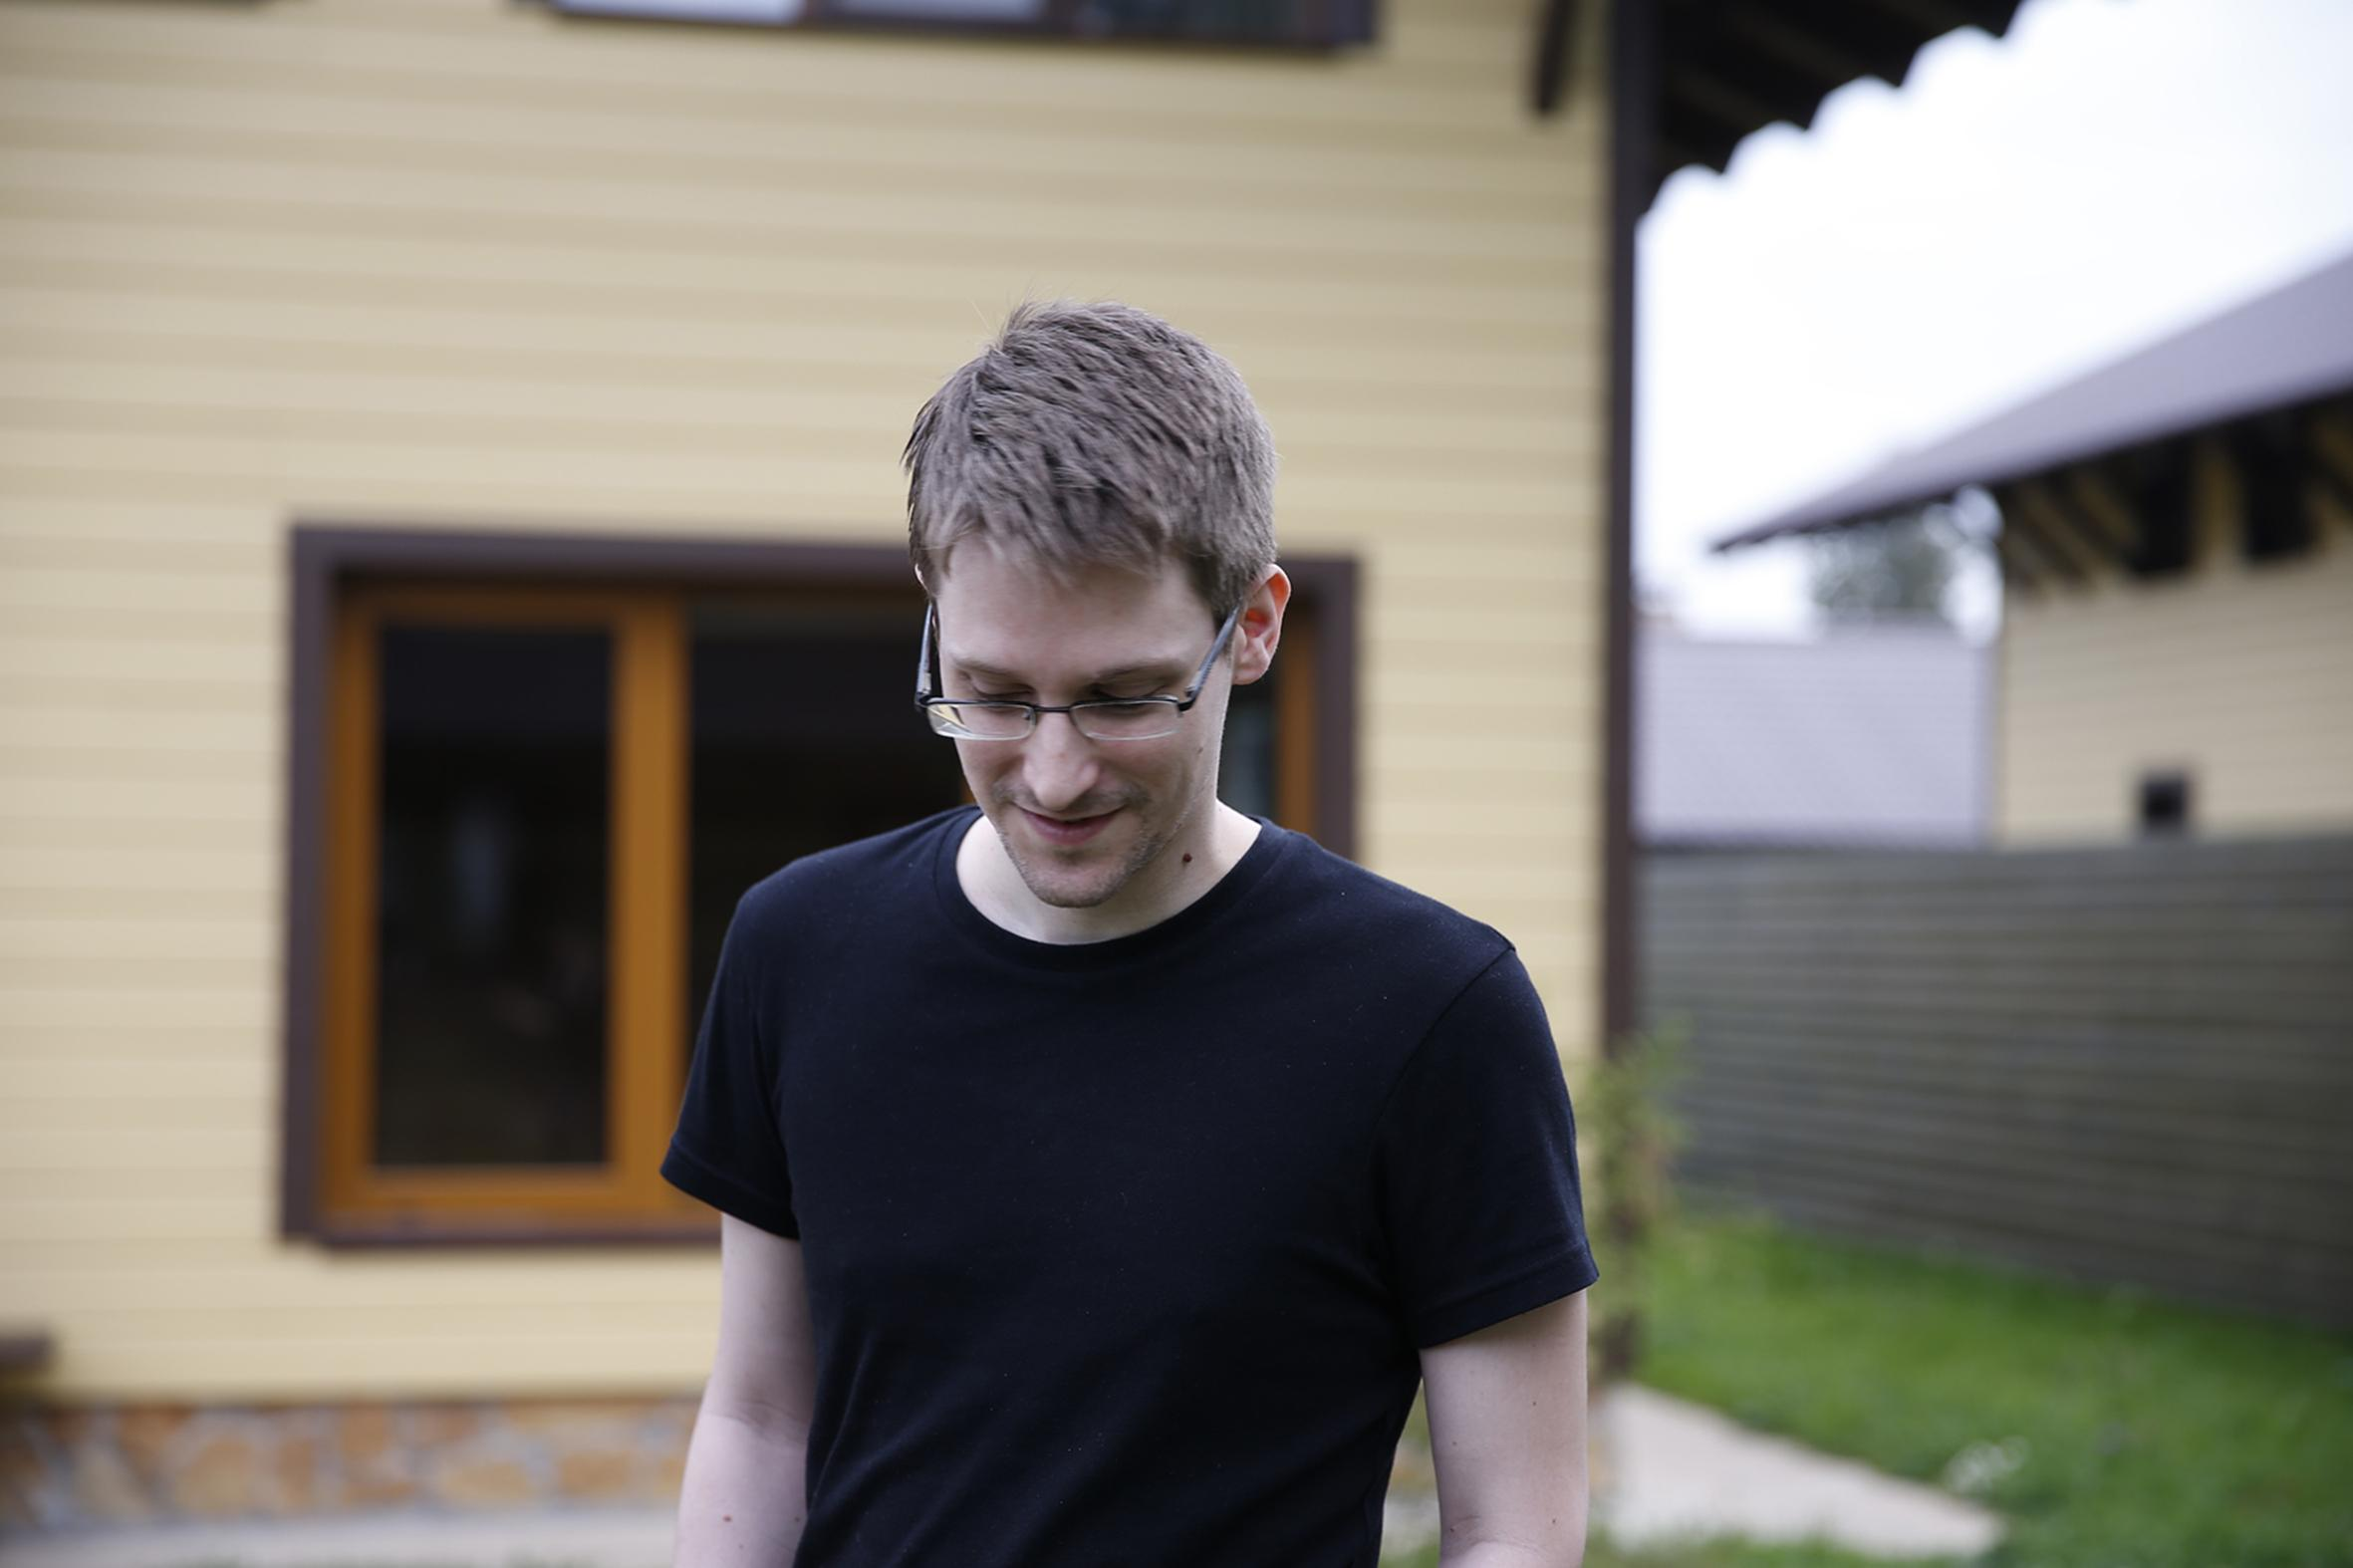 1 CITIZENFOUR